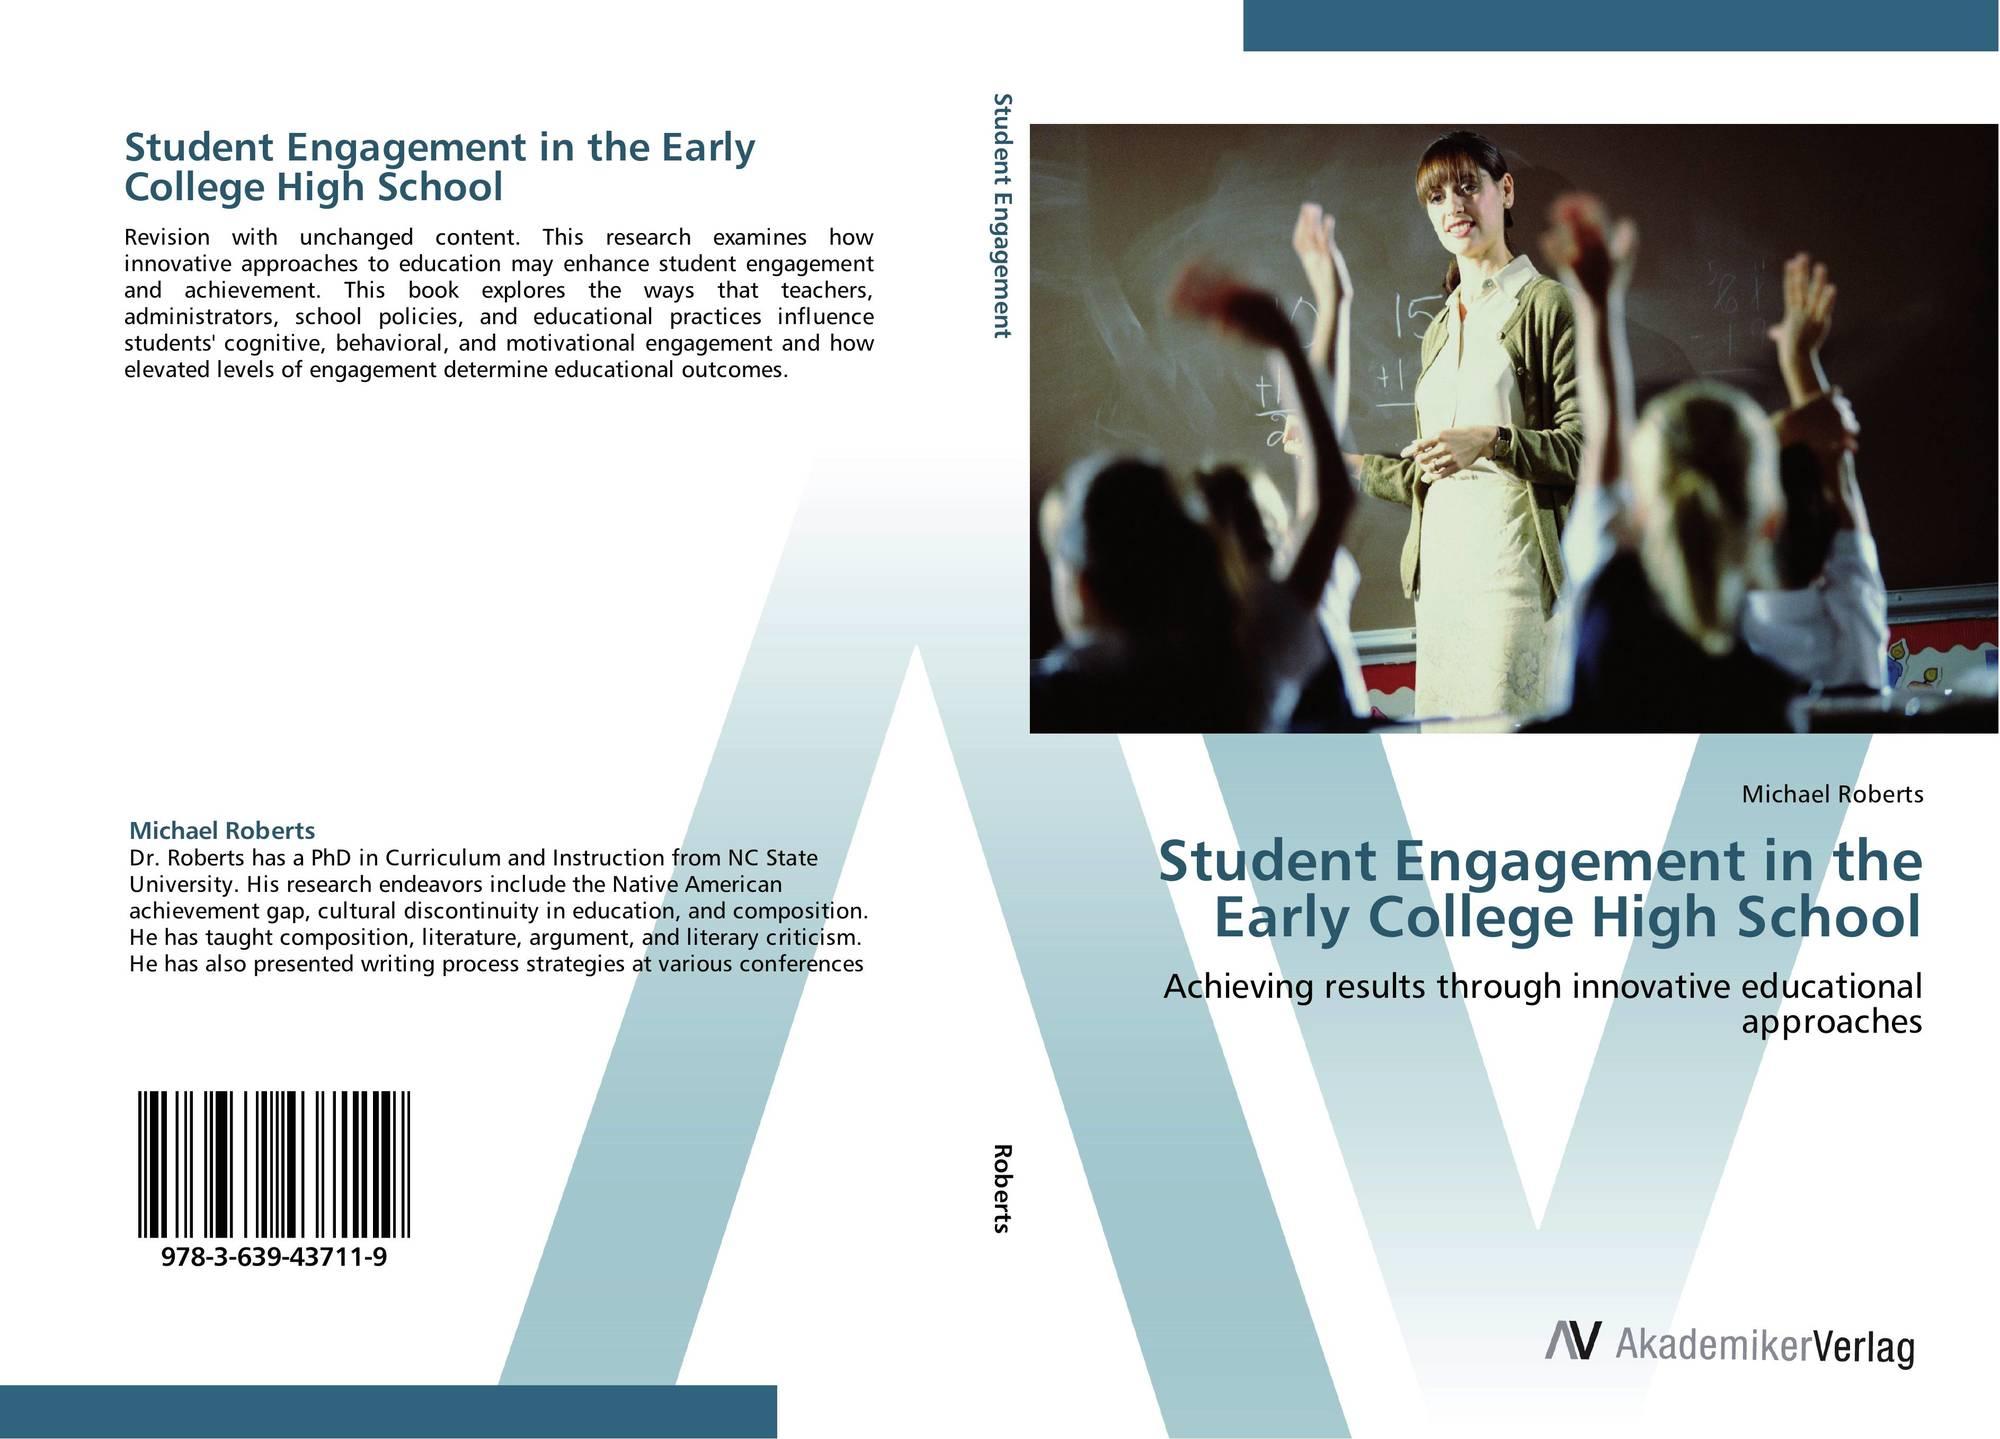 Student Engagement in the Early College High School, 978-3-639-43711